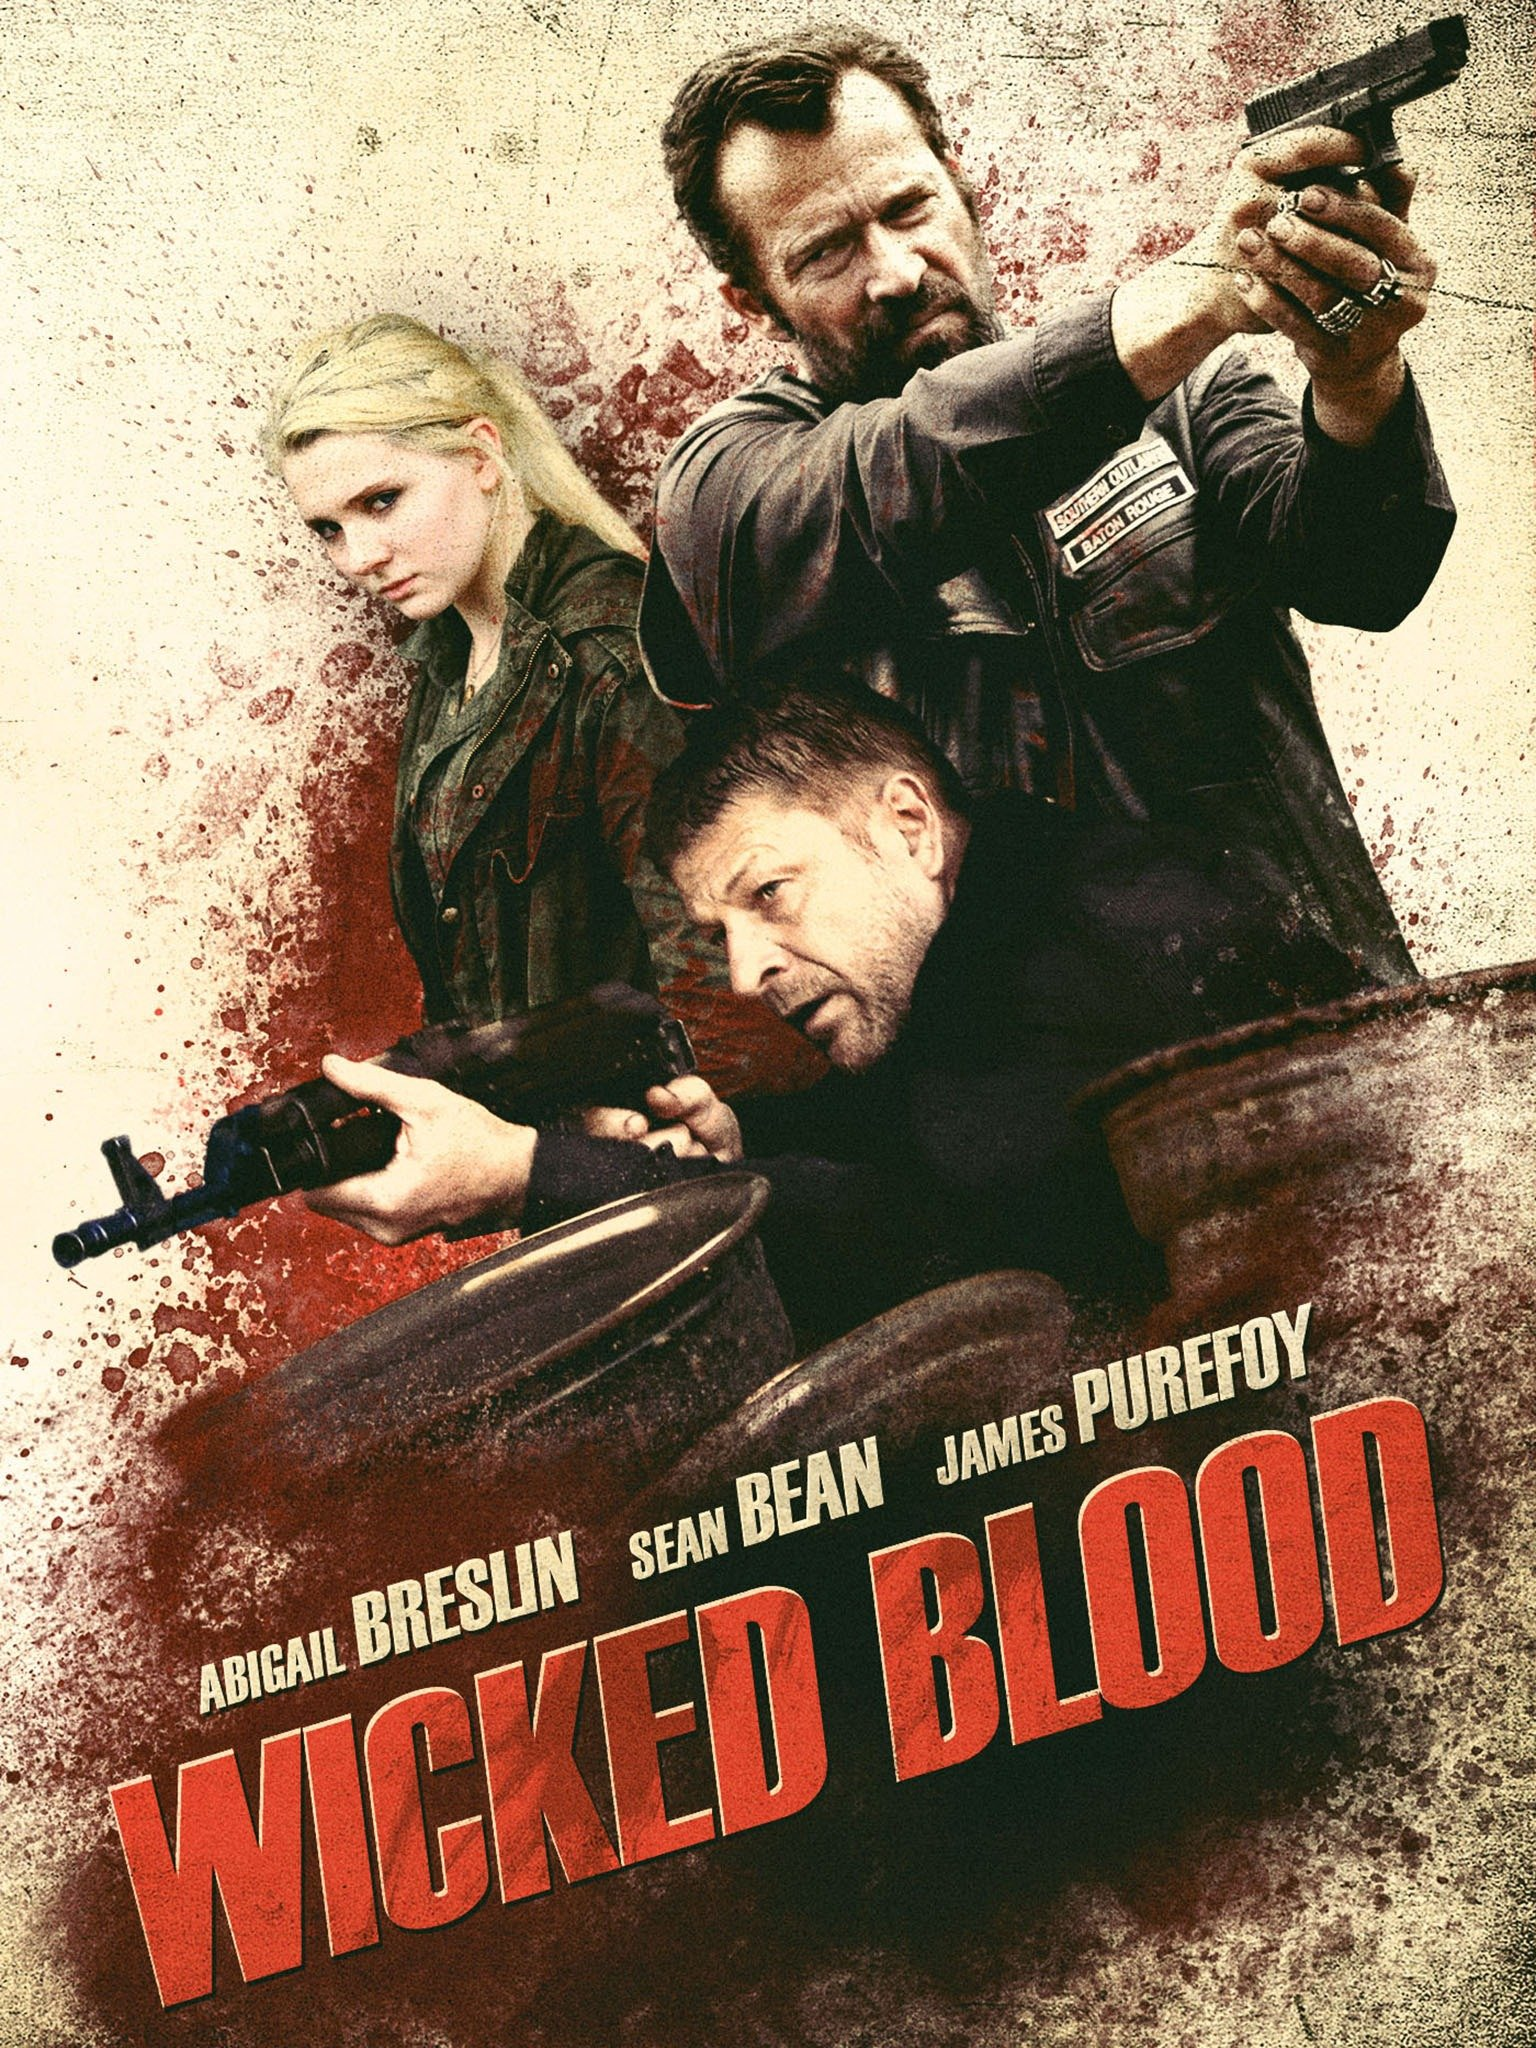 Wicked Blood